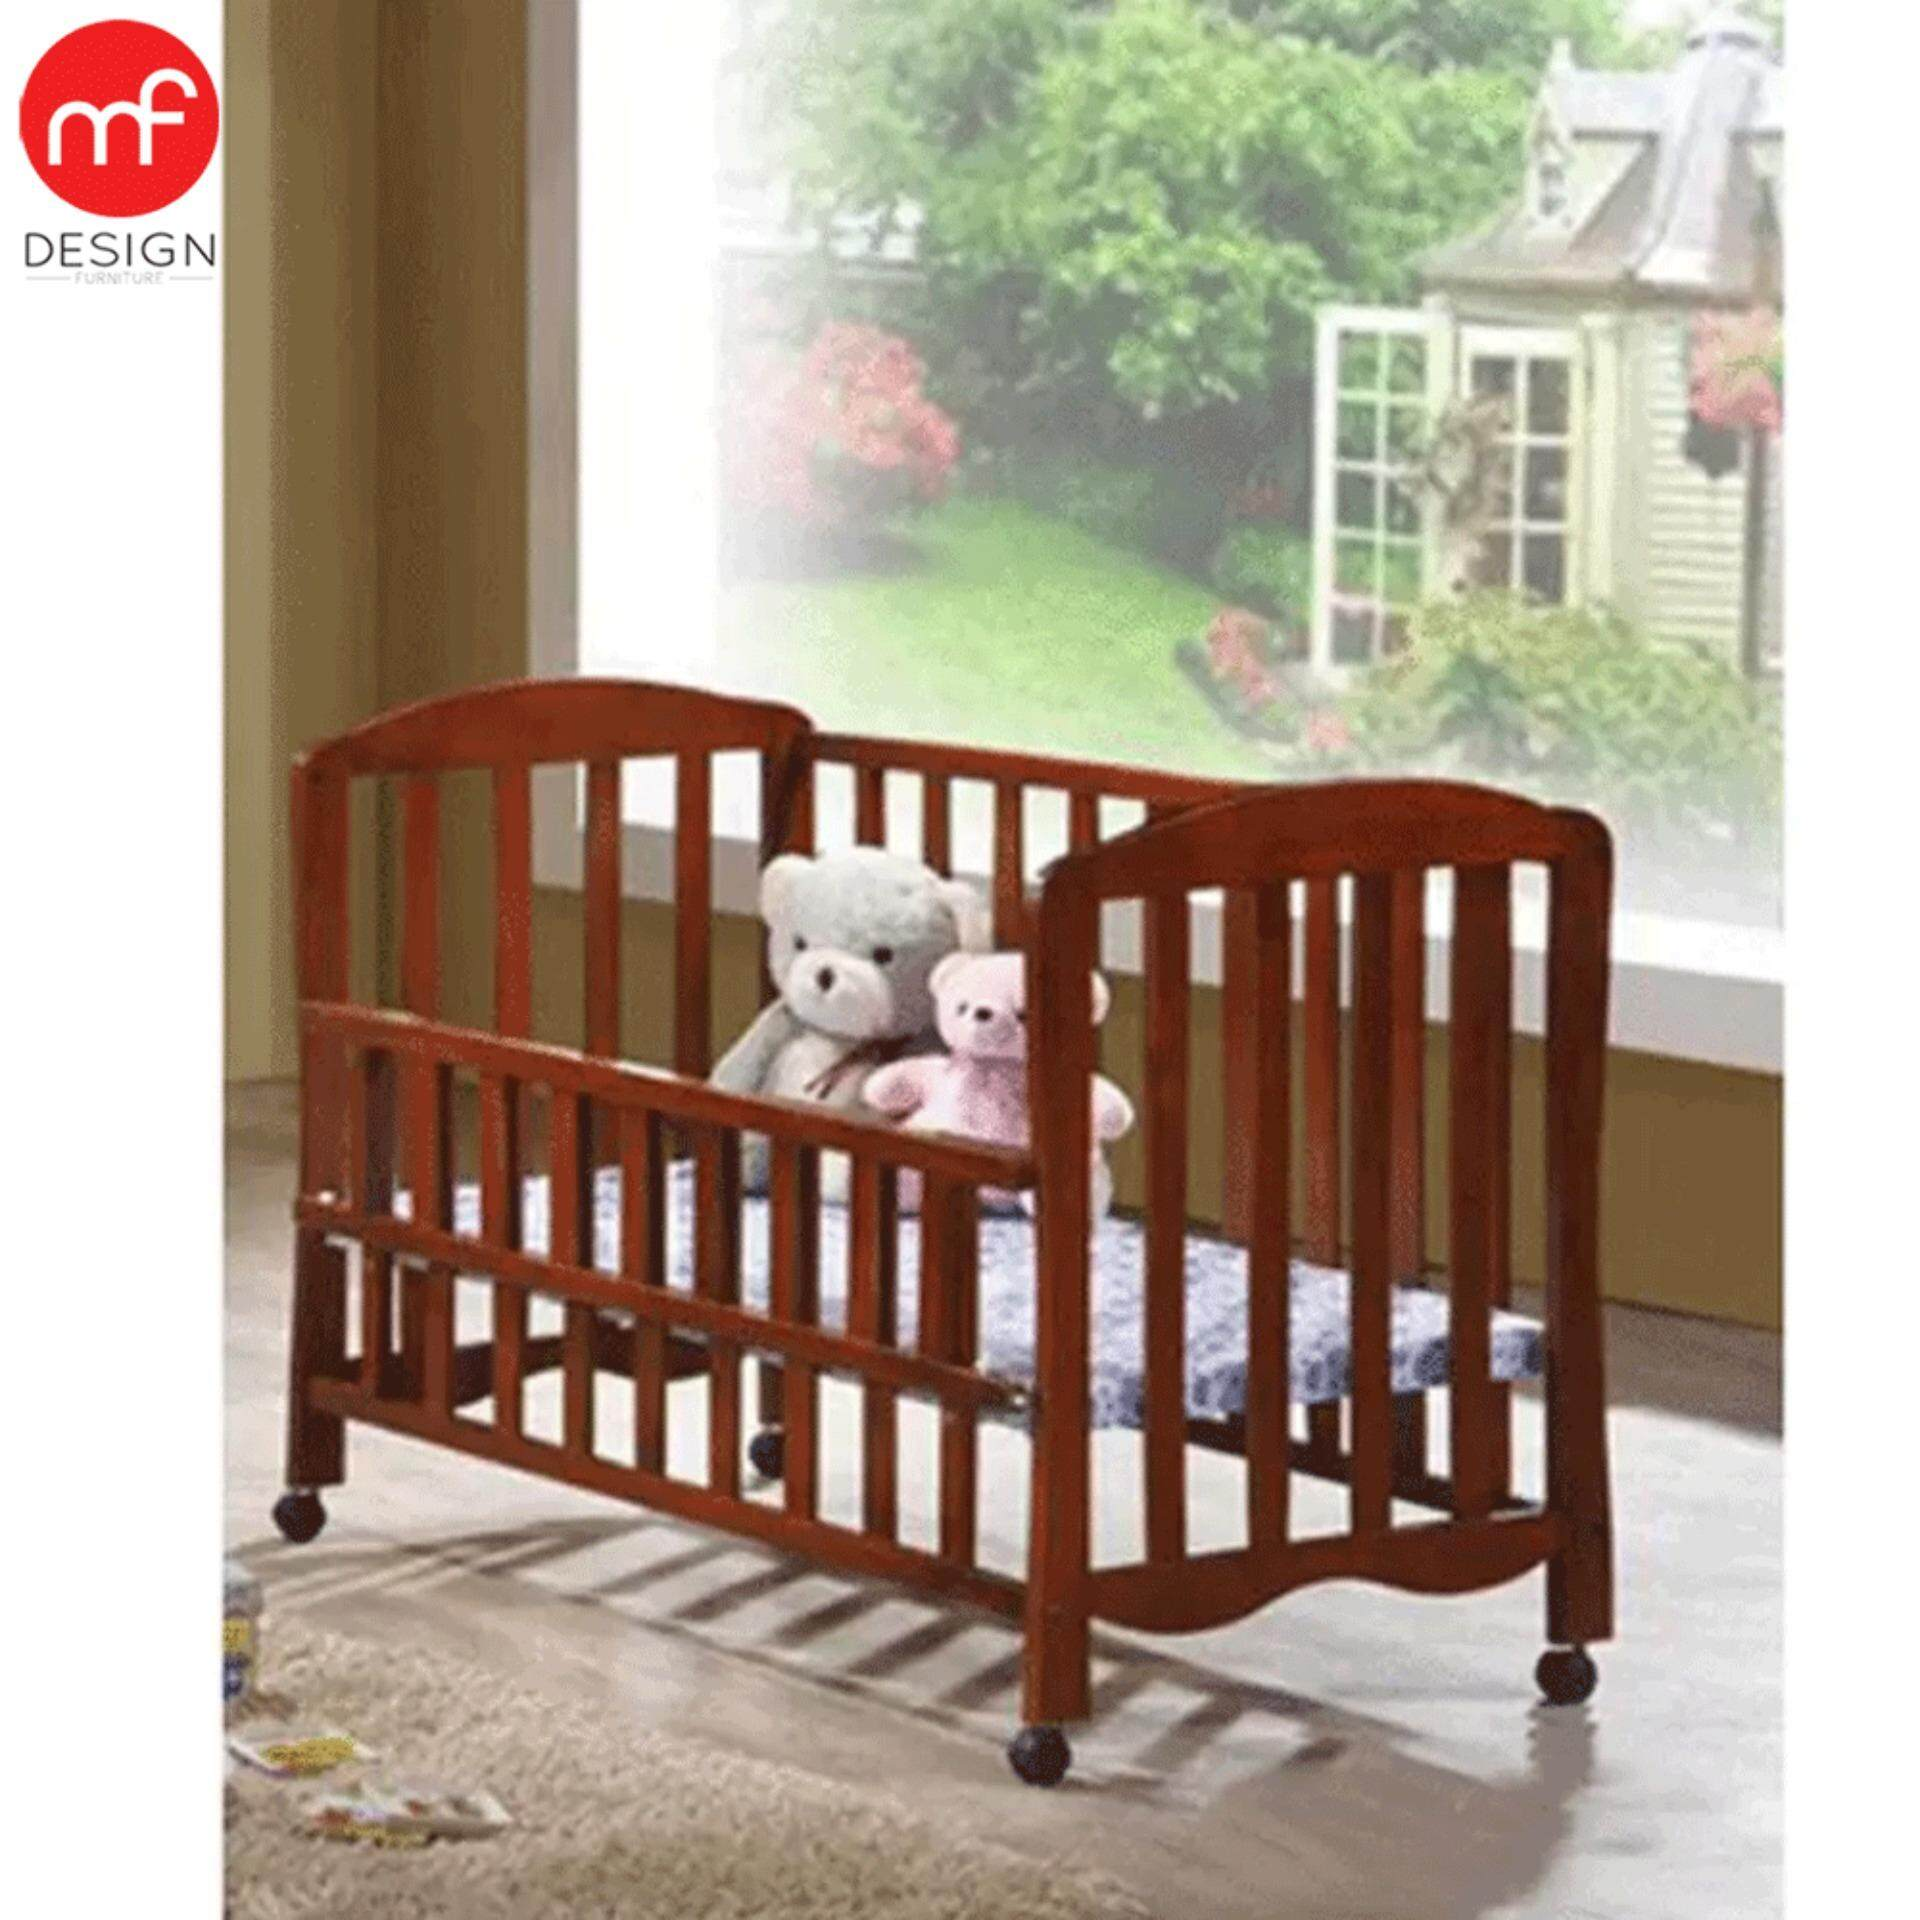 Baby bed malaysia - Mf Design Candy Baby Cot Kids Bed Oak